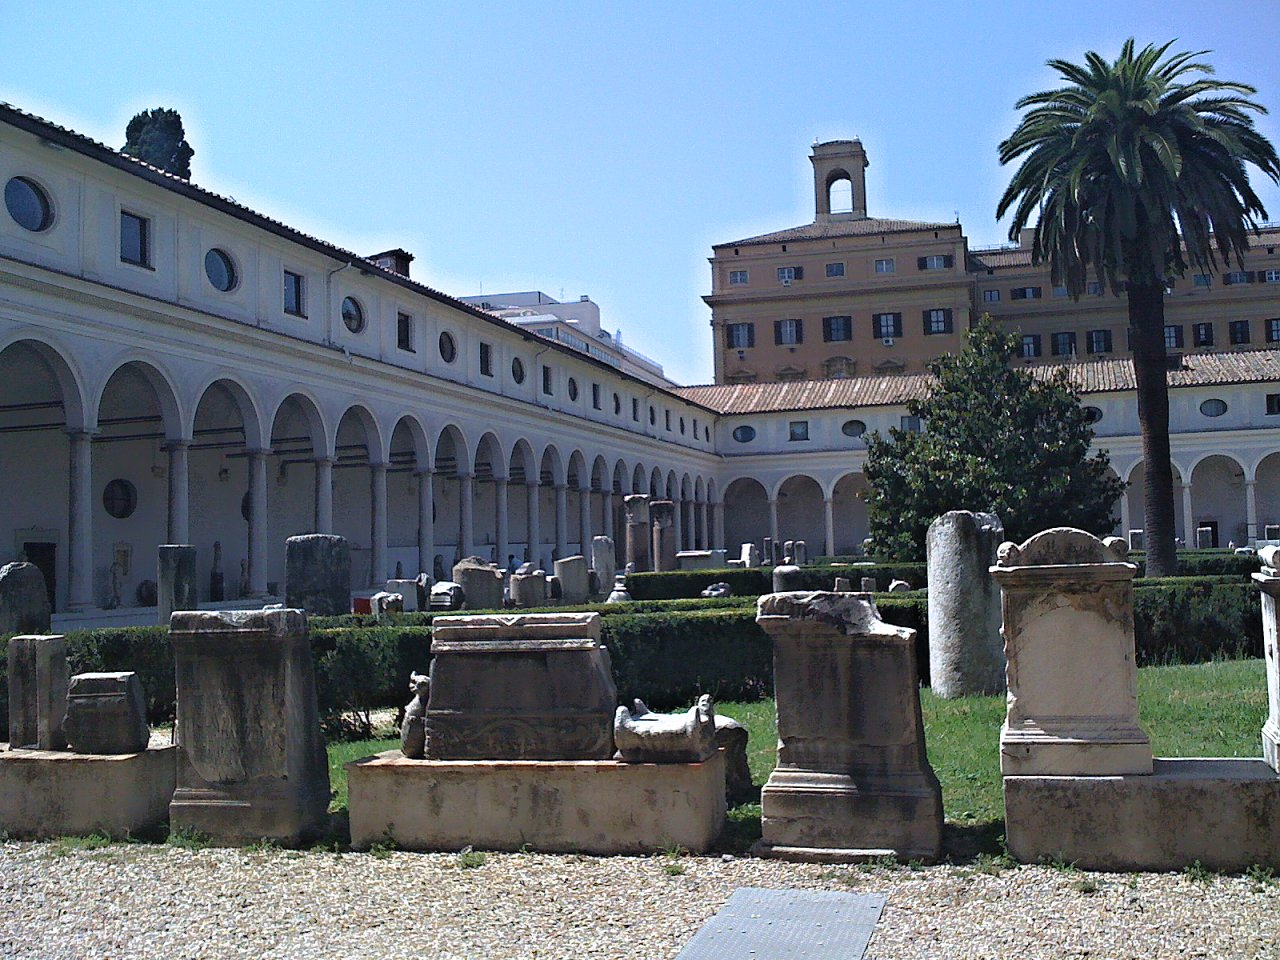 National Roman Museum – Baths of Diocletian, Rome Attractions, Best Places to visit in Rome, Italy